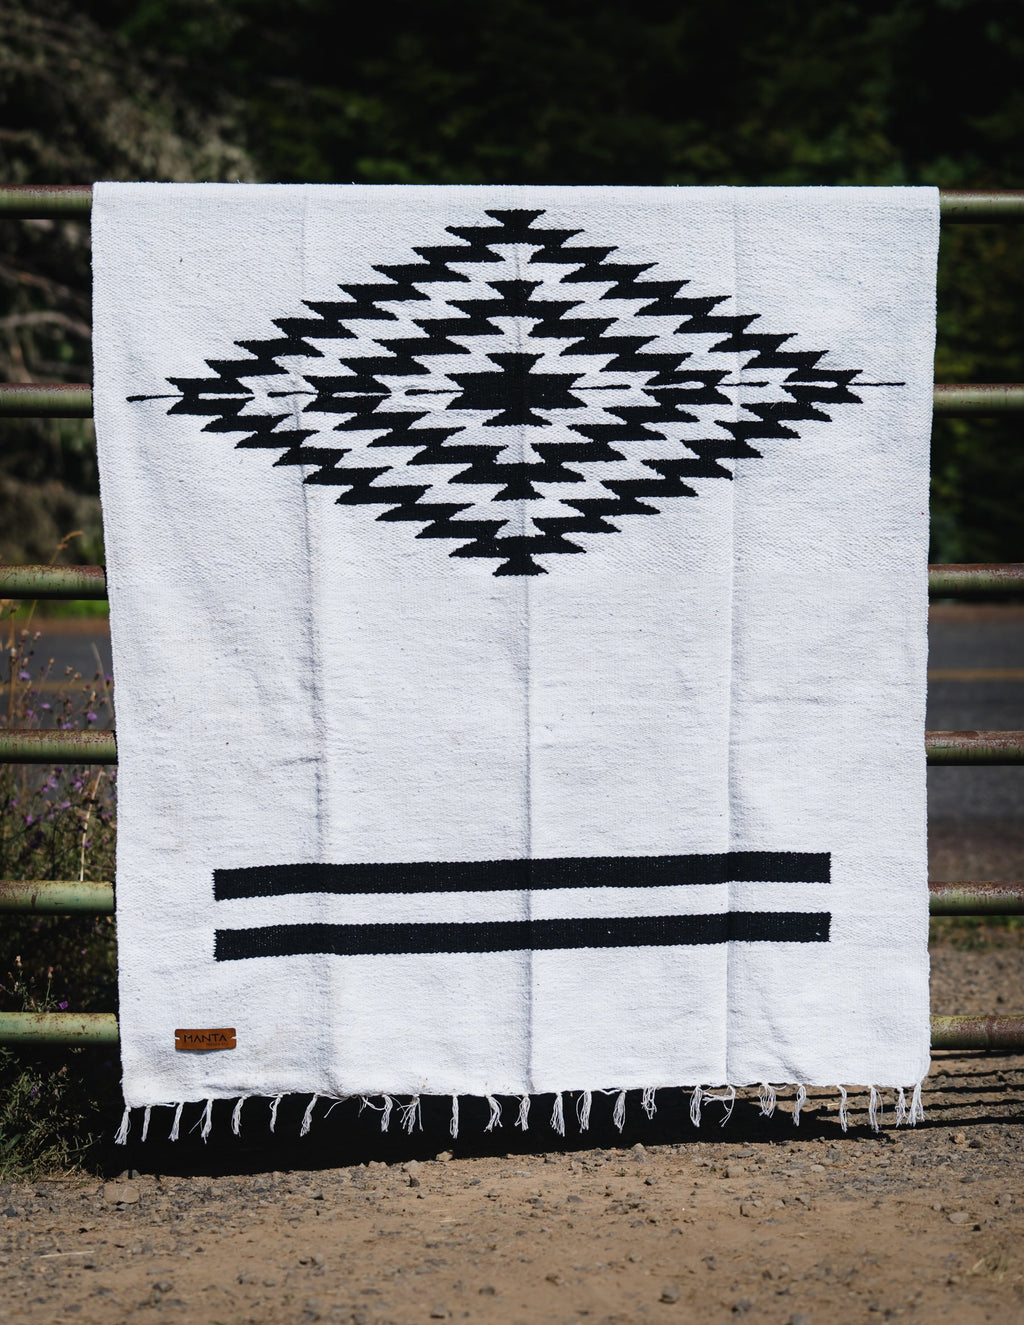 Cerritos Black Diamond Blanket - Mantacompany.com